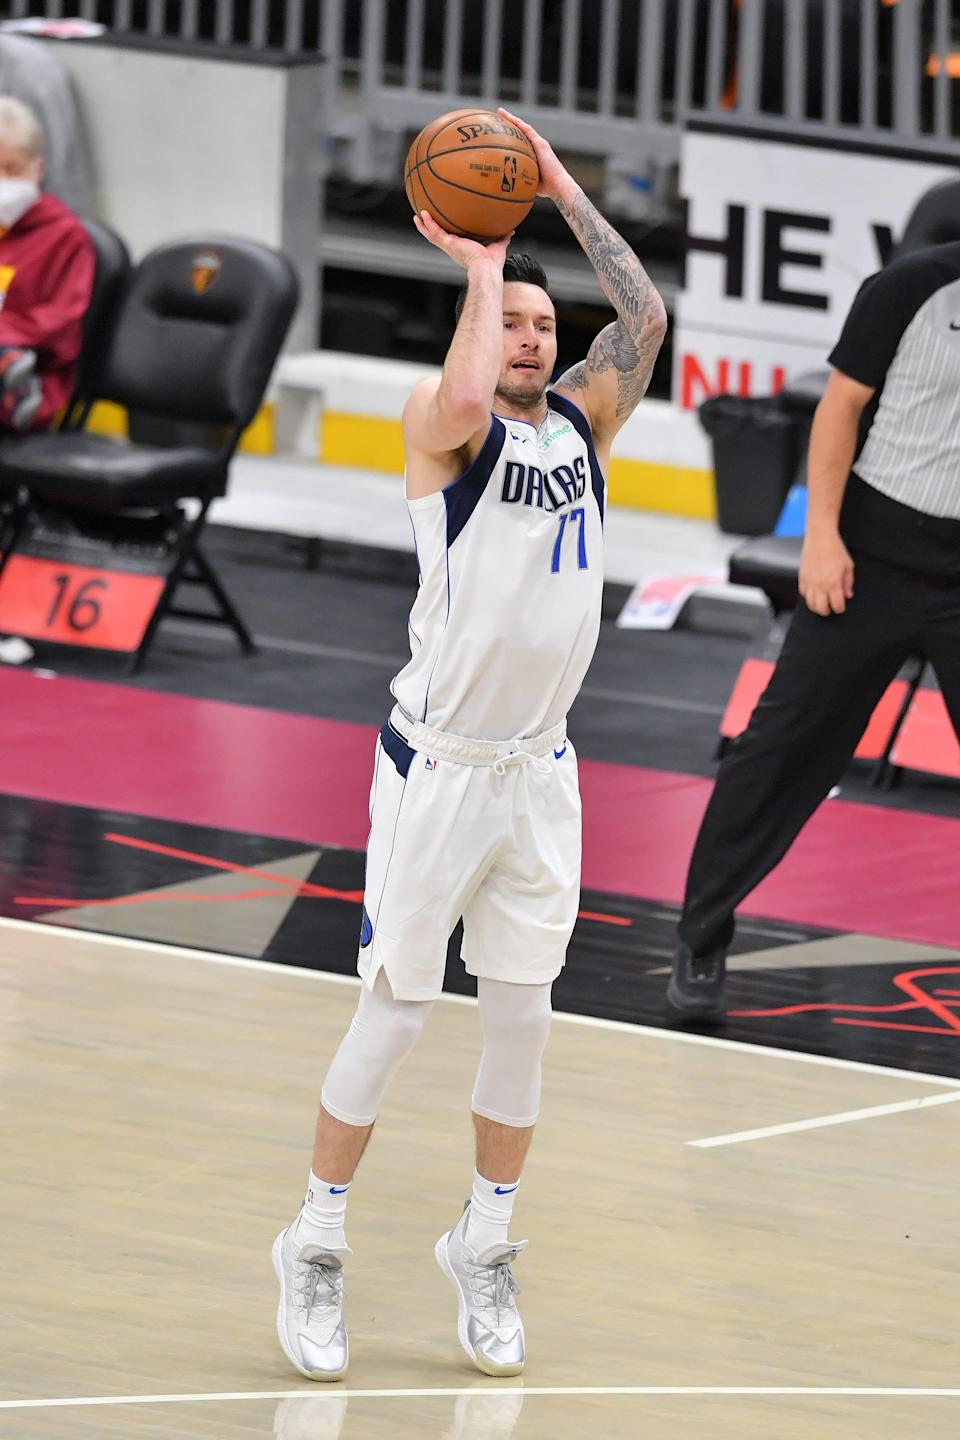 The Lakers need to acquire a shooter in free agency, and J.J. Redick could be a realistic option.